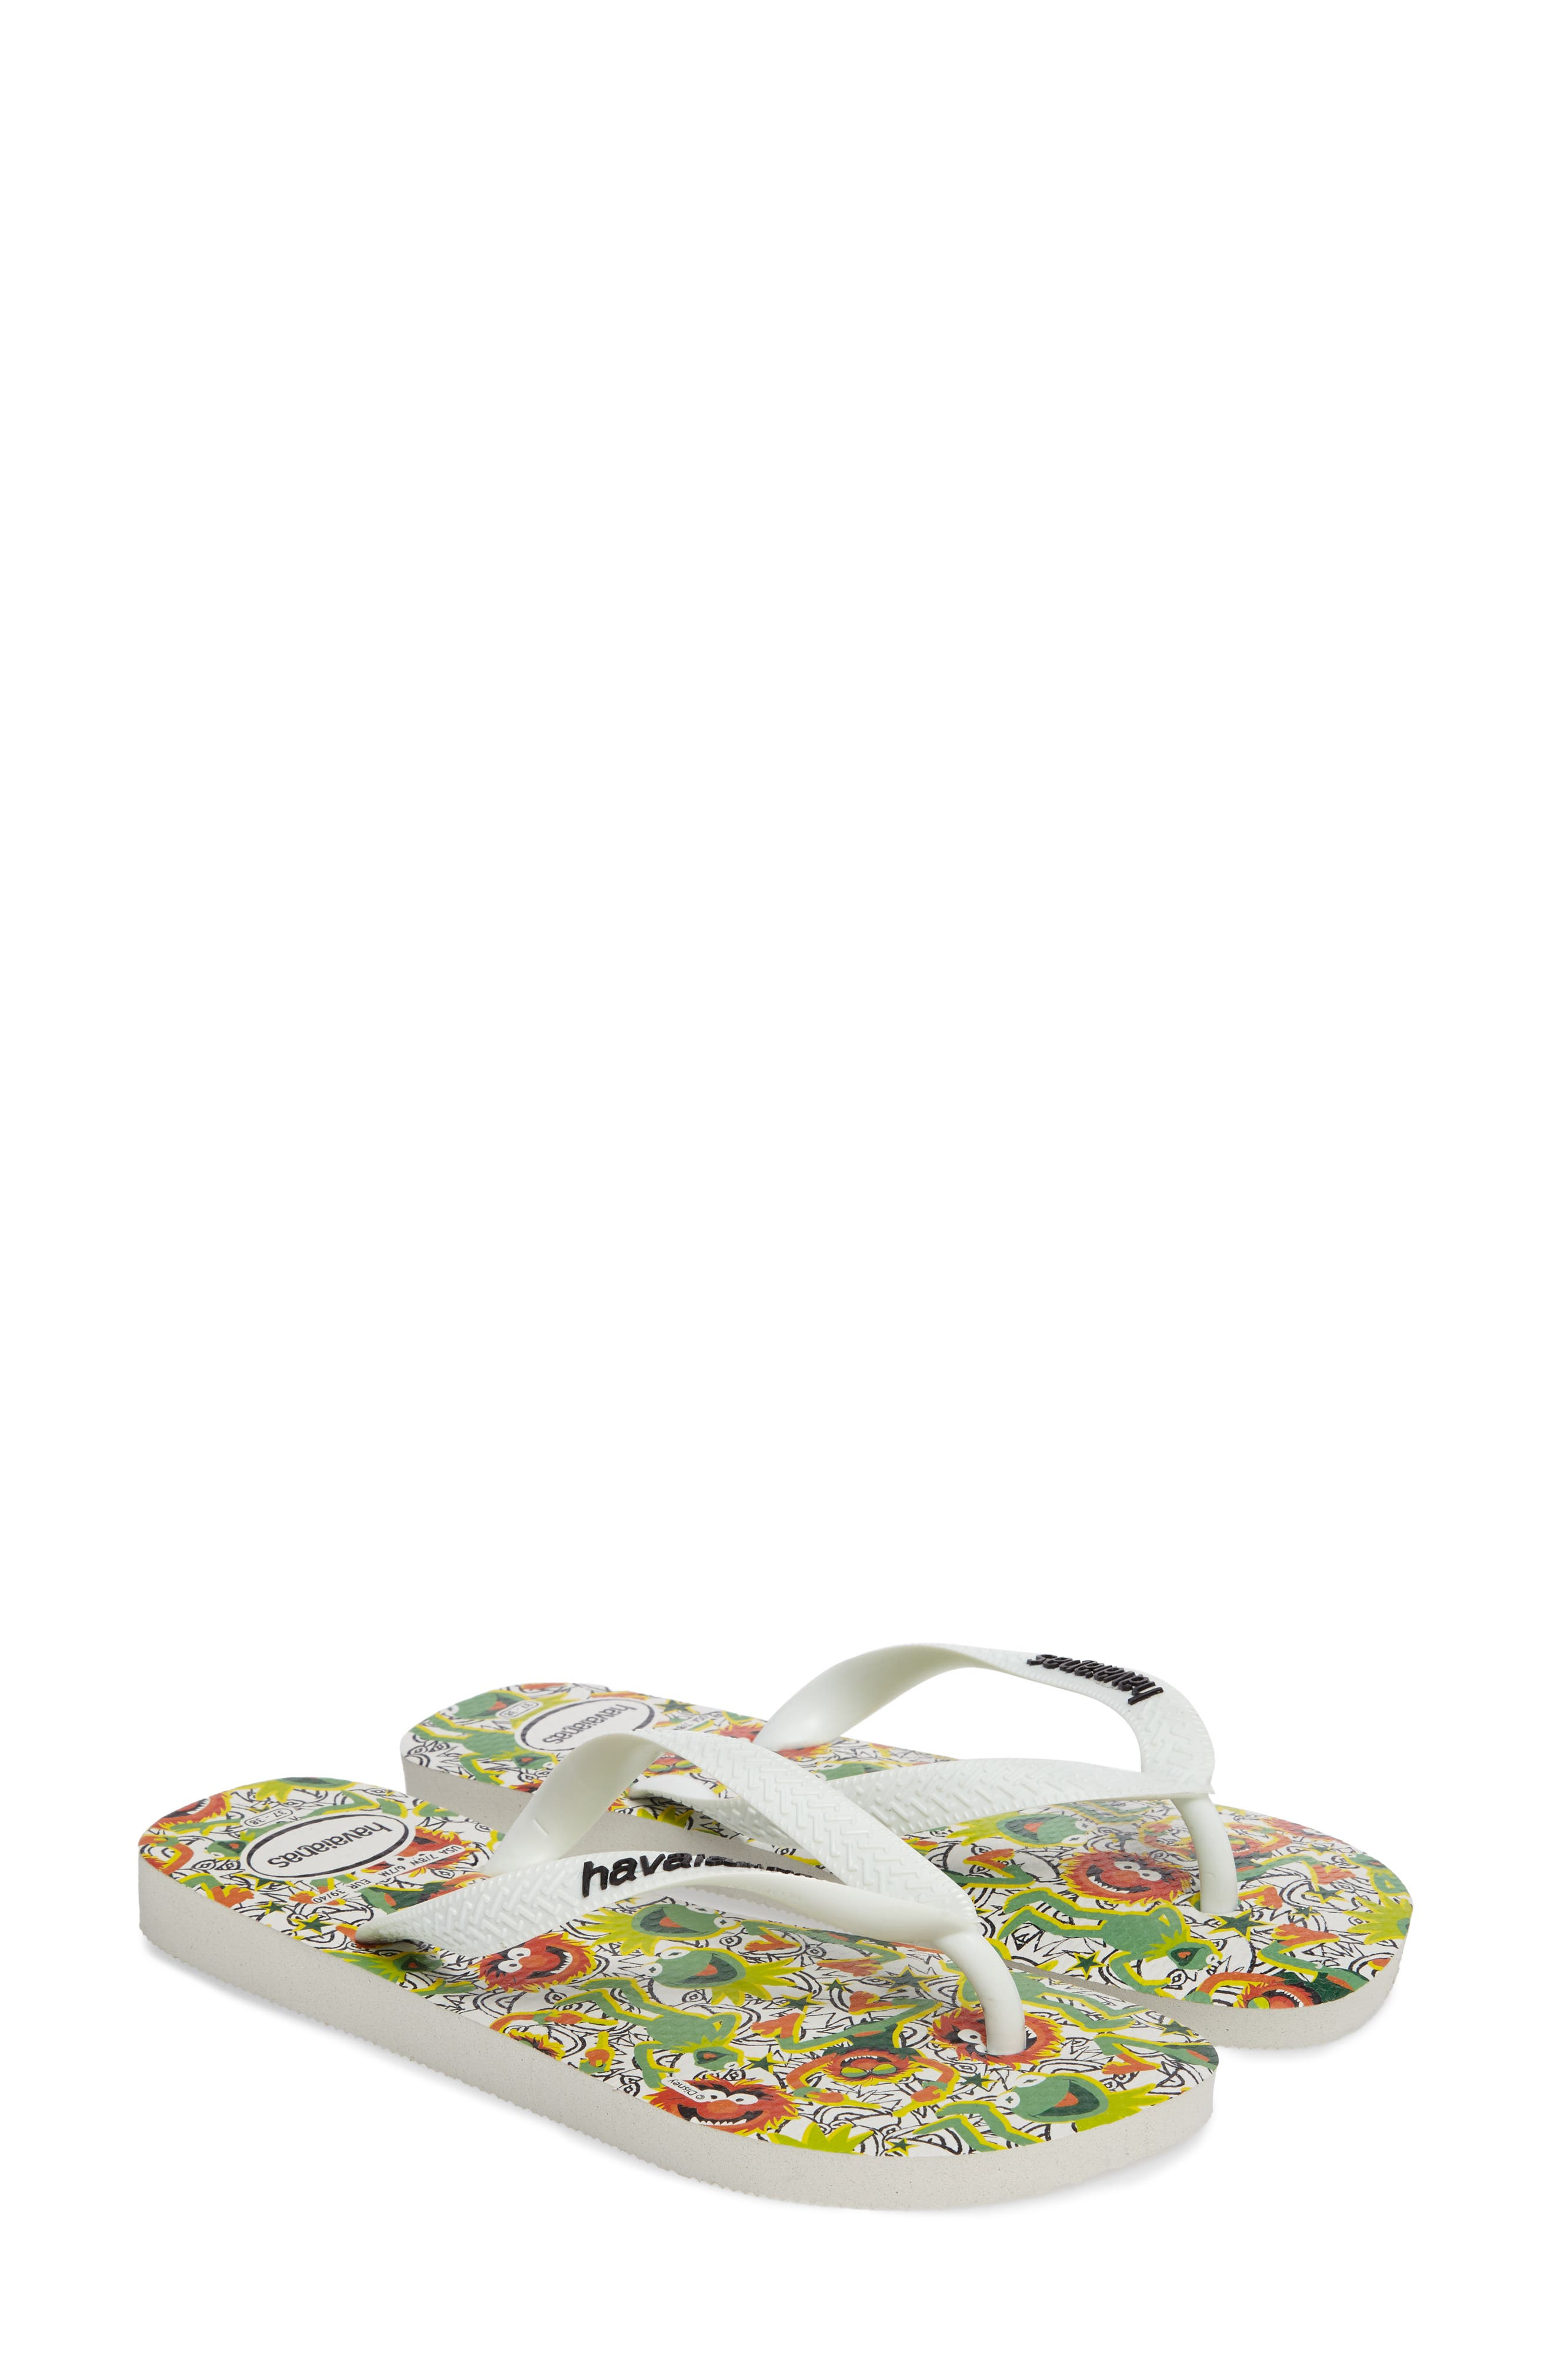 Havaianas Top Millennial Disney Thematic Flip Flop (Women)